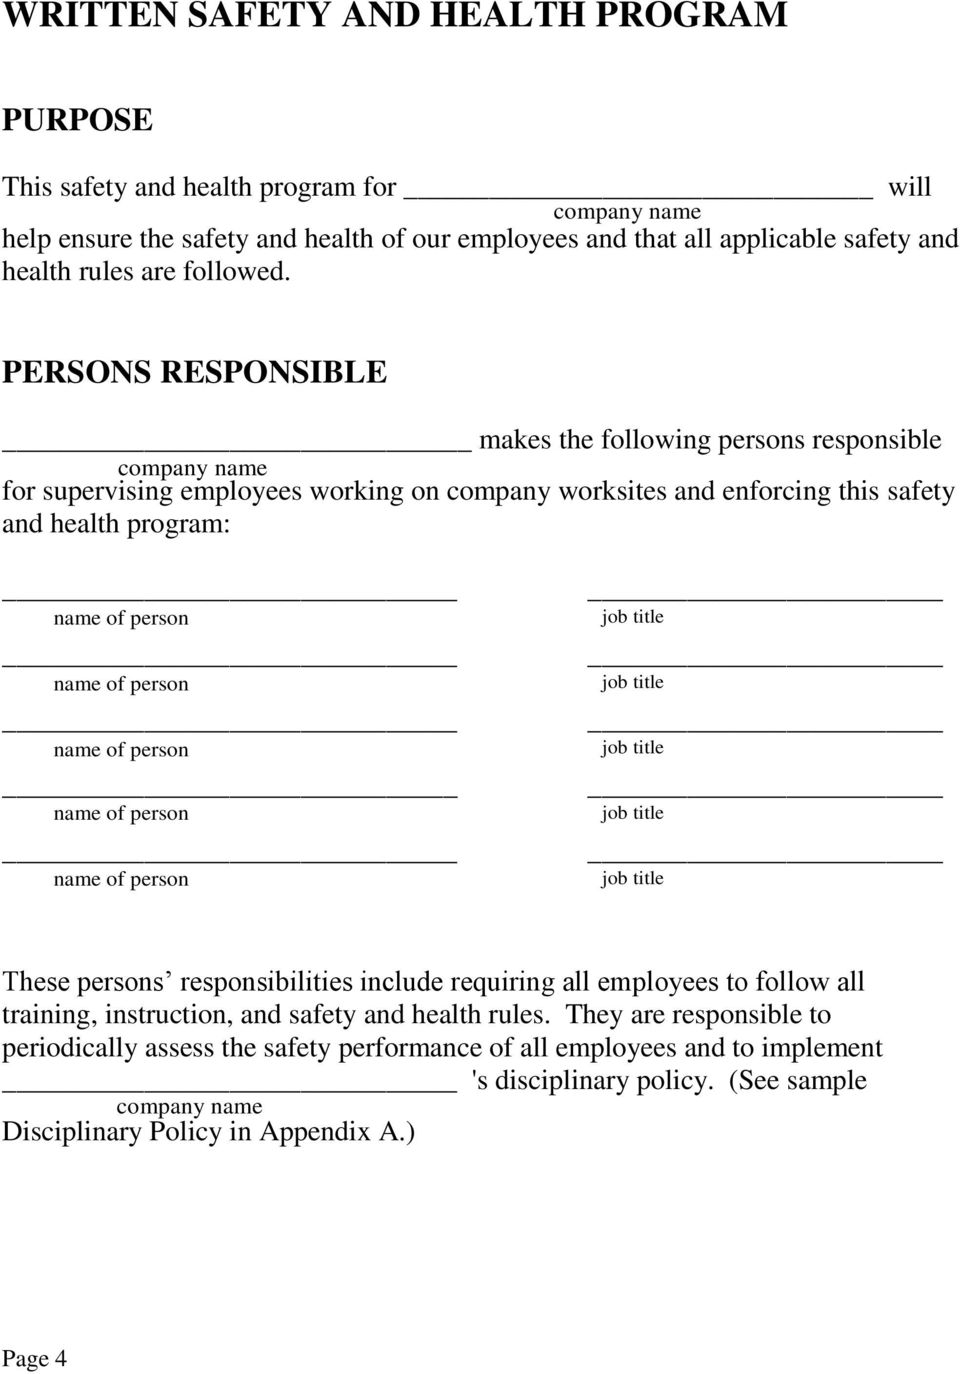 PERSONS RESPONSIBLE makes the following persons responsible company name for supervising employees working on company worksites and enforcing this safety and health program: job title job